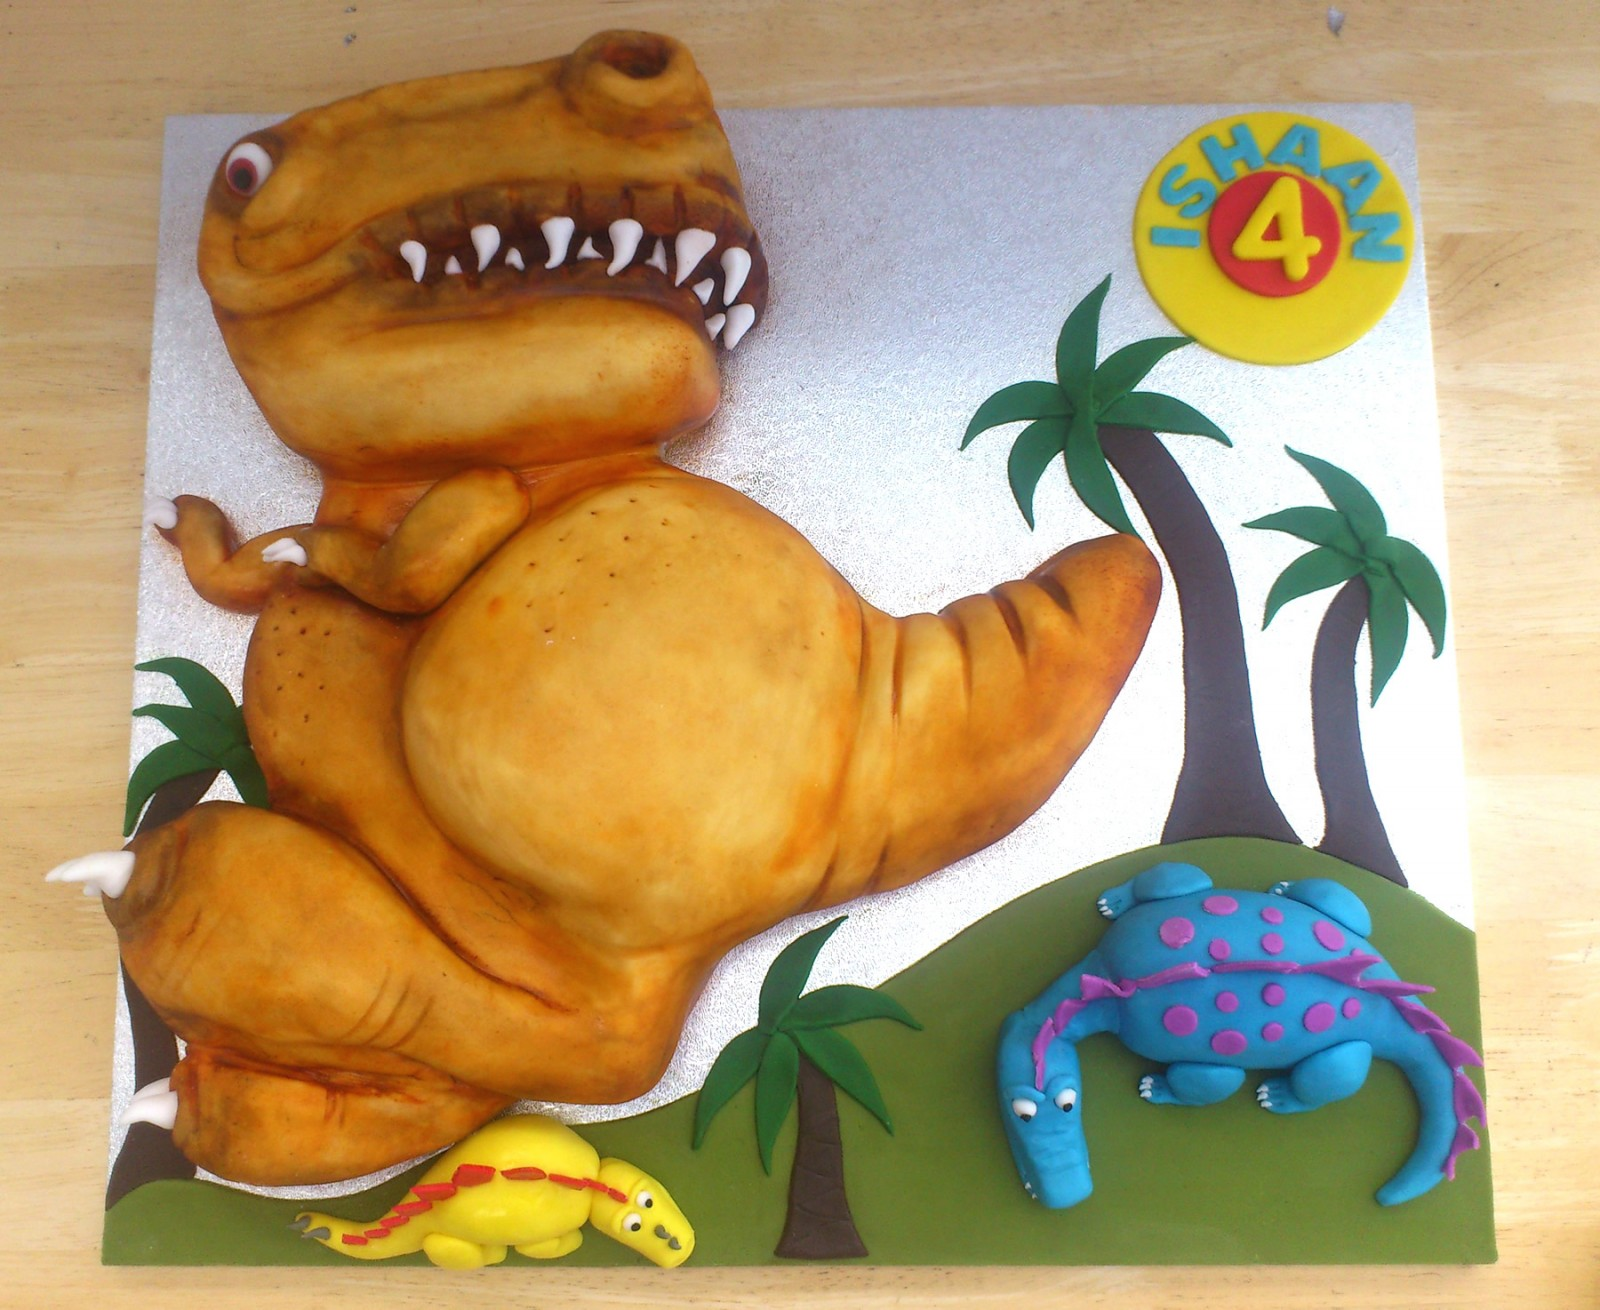 Fantastic T Rex Dinosaur Novelty Birthday Cake Susies Cakes Personalised Birthday Cards Paralily Jamesorg